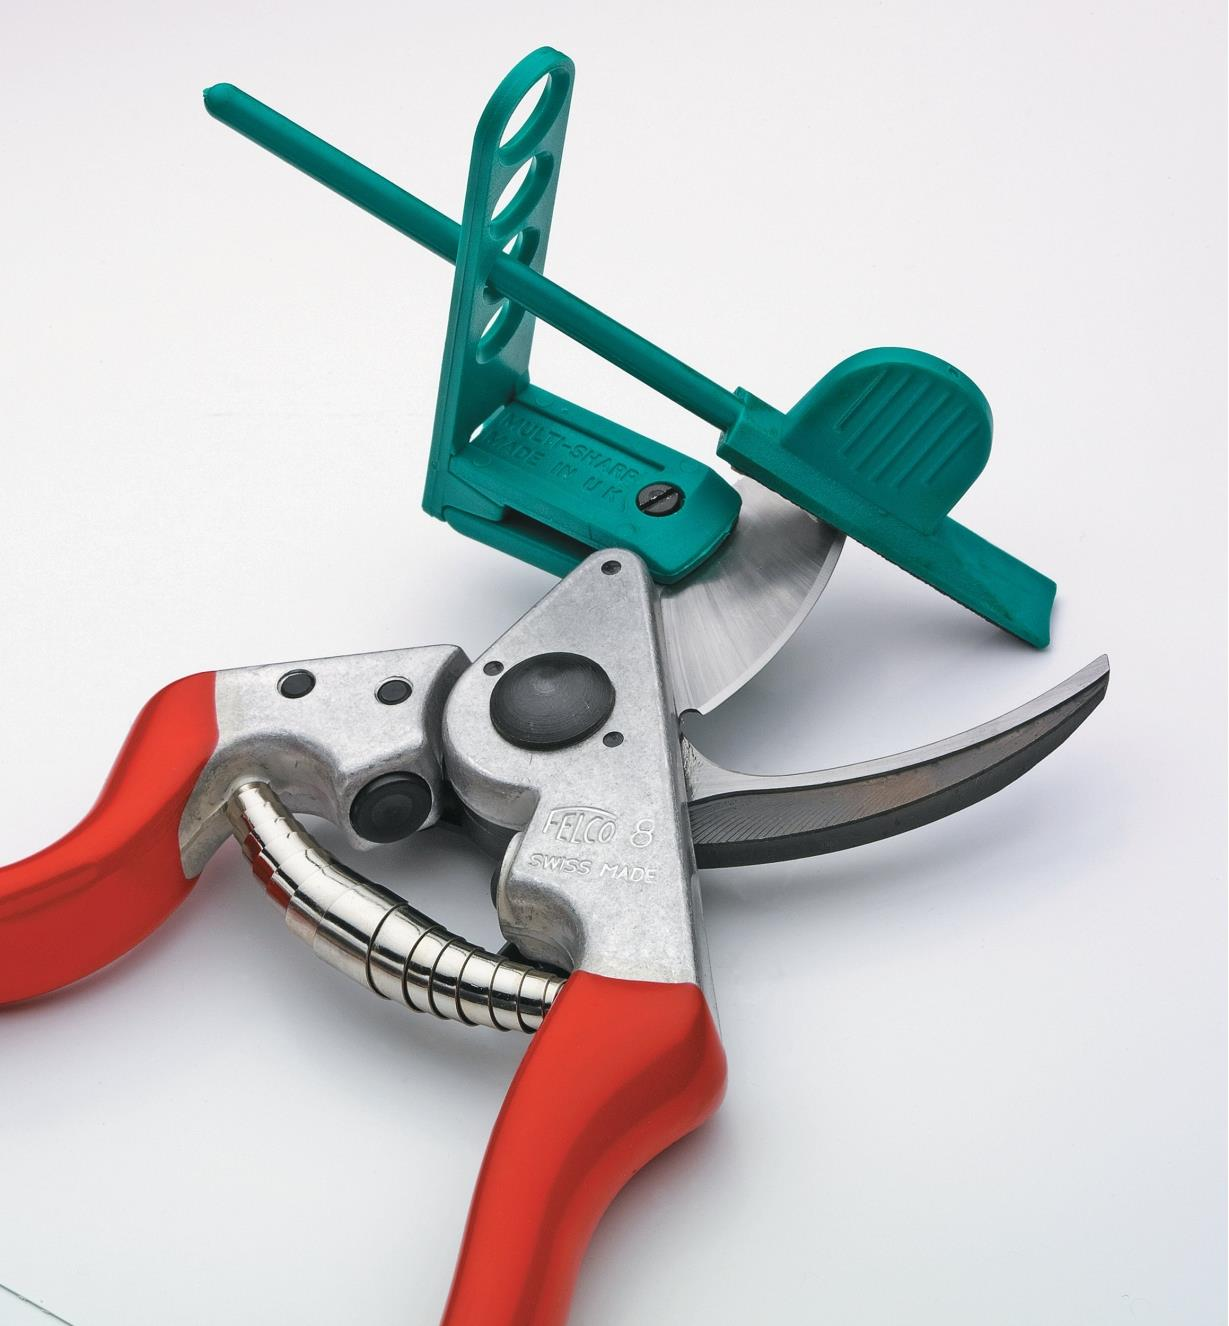 AG701 - Pruner Sharpener